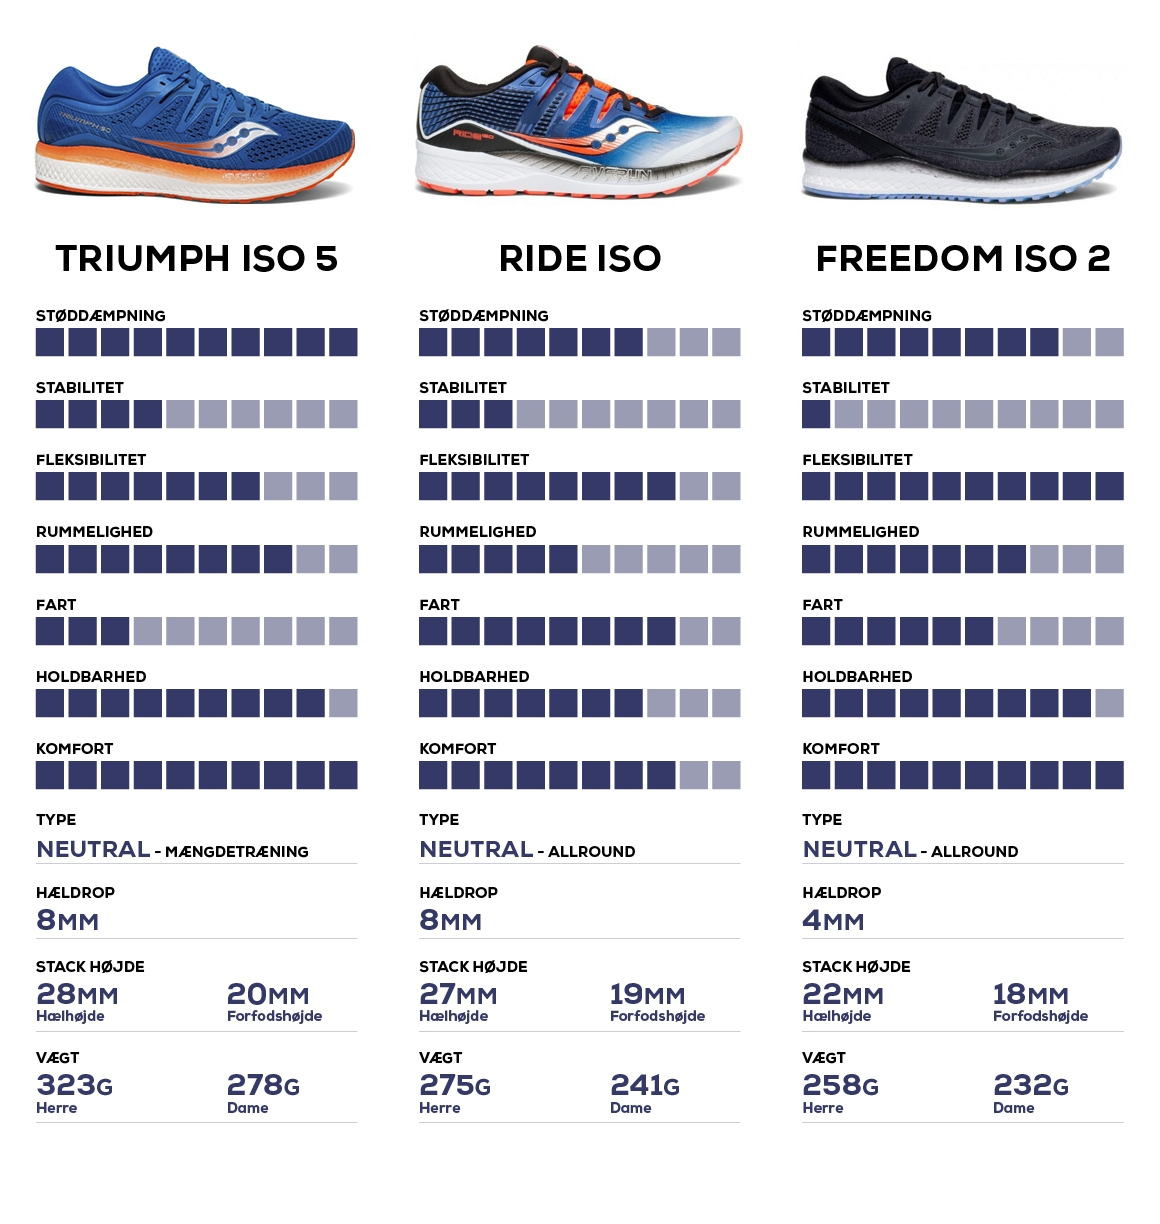 Saucony Triumph iso 5, saucony ride iso, saucony freedom iso 2 sammenligning